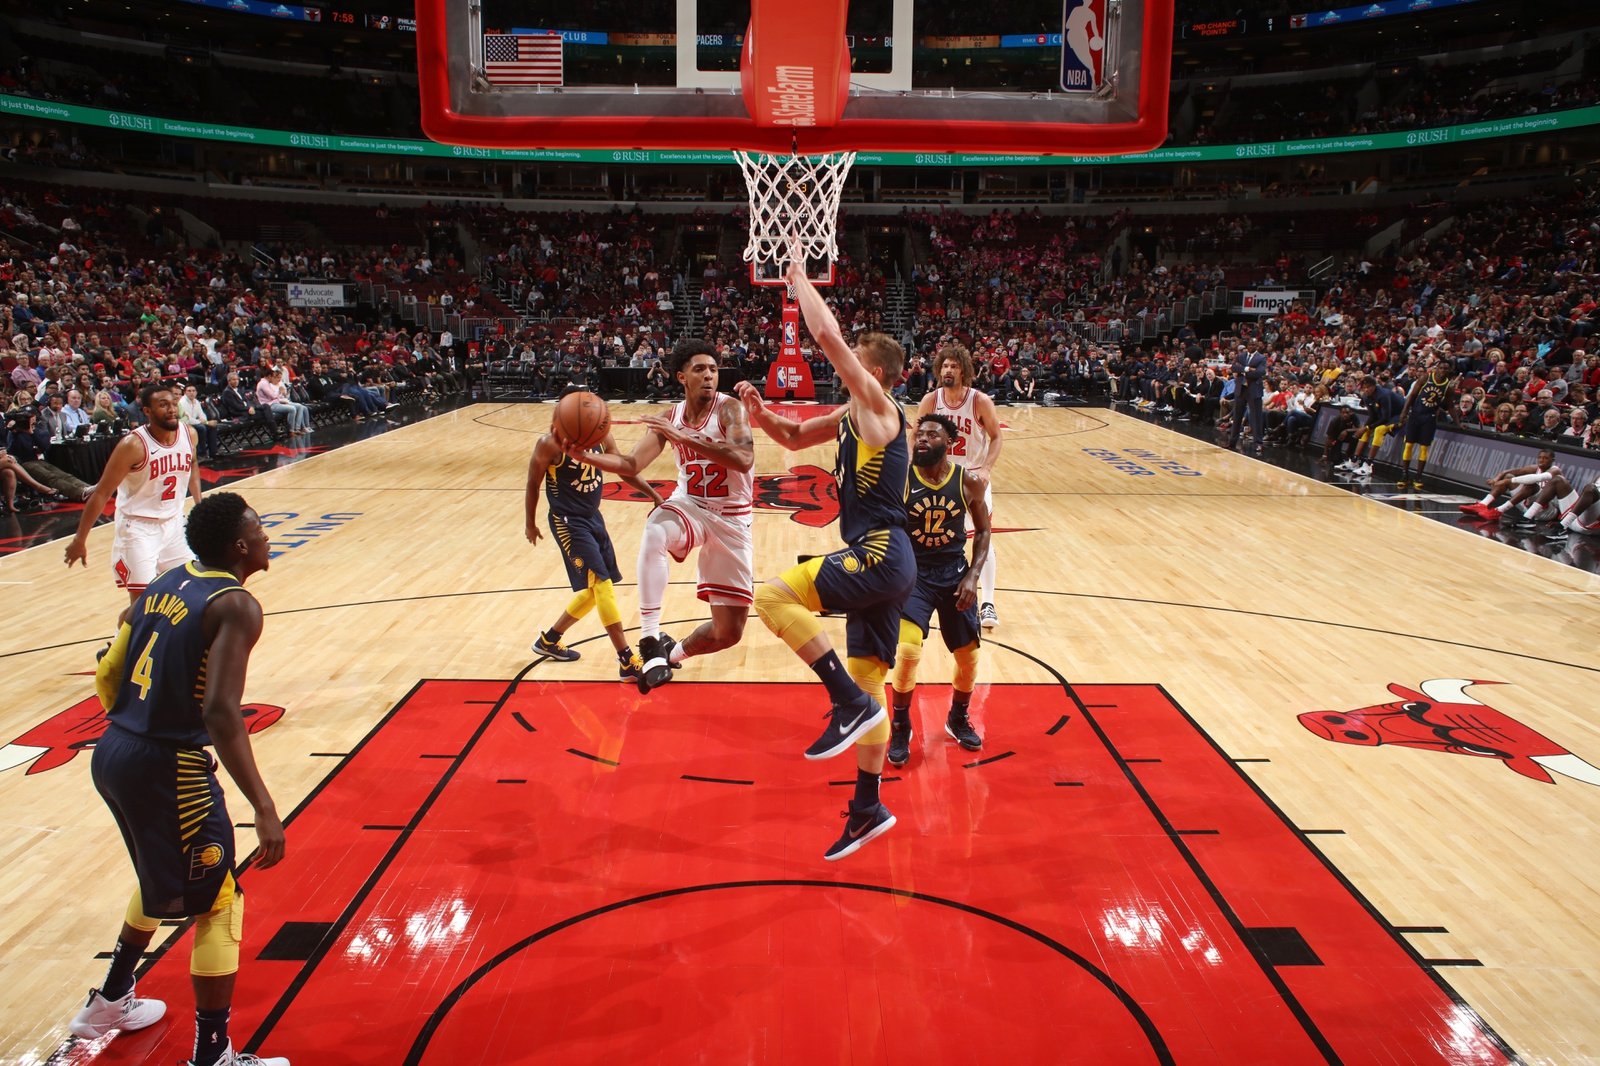 Cameron Payne #22 of the Chicago Bulls shoots the ball against the Indiana Pacers during a pre-season game on October 10, 2018 at the United Center in Chicago, Illinois.